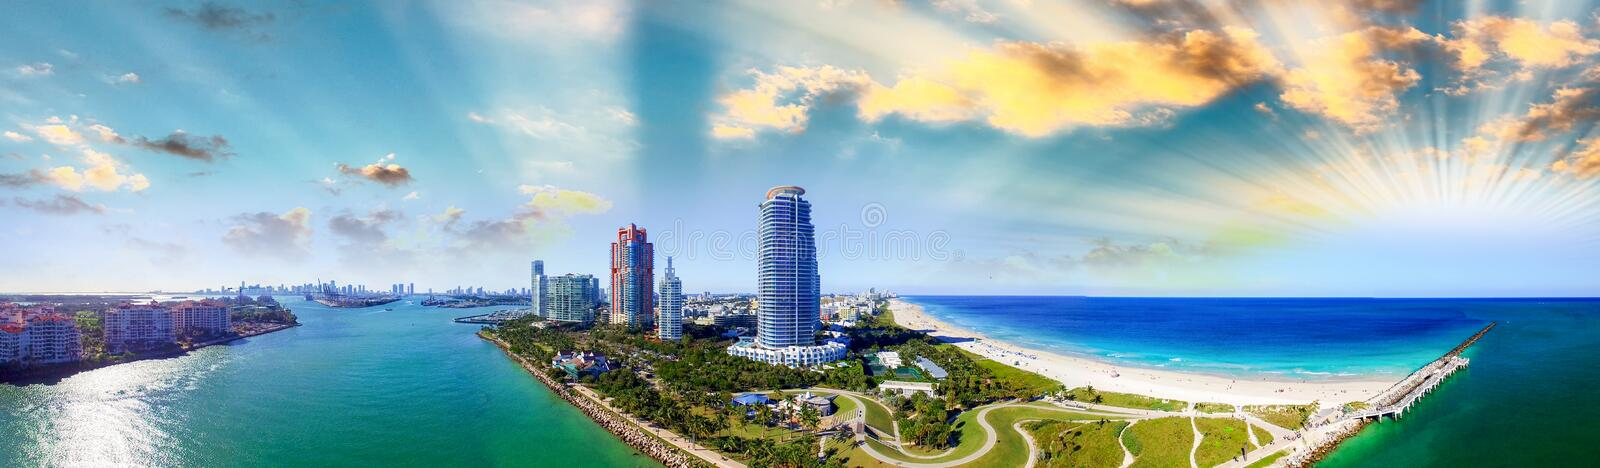 Panoramic aerial view of South Pointe Beach in Miami stock image